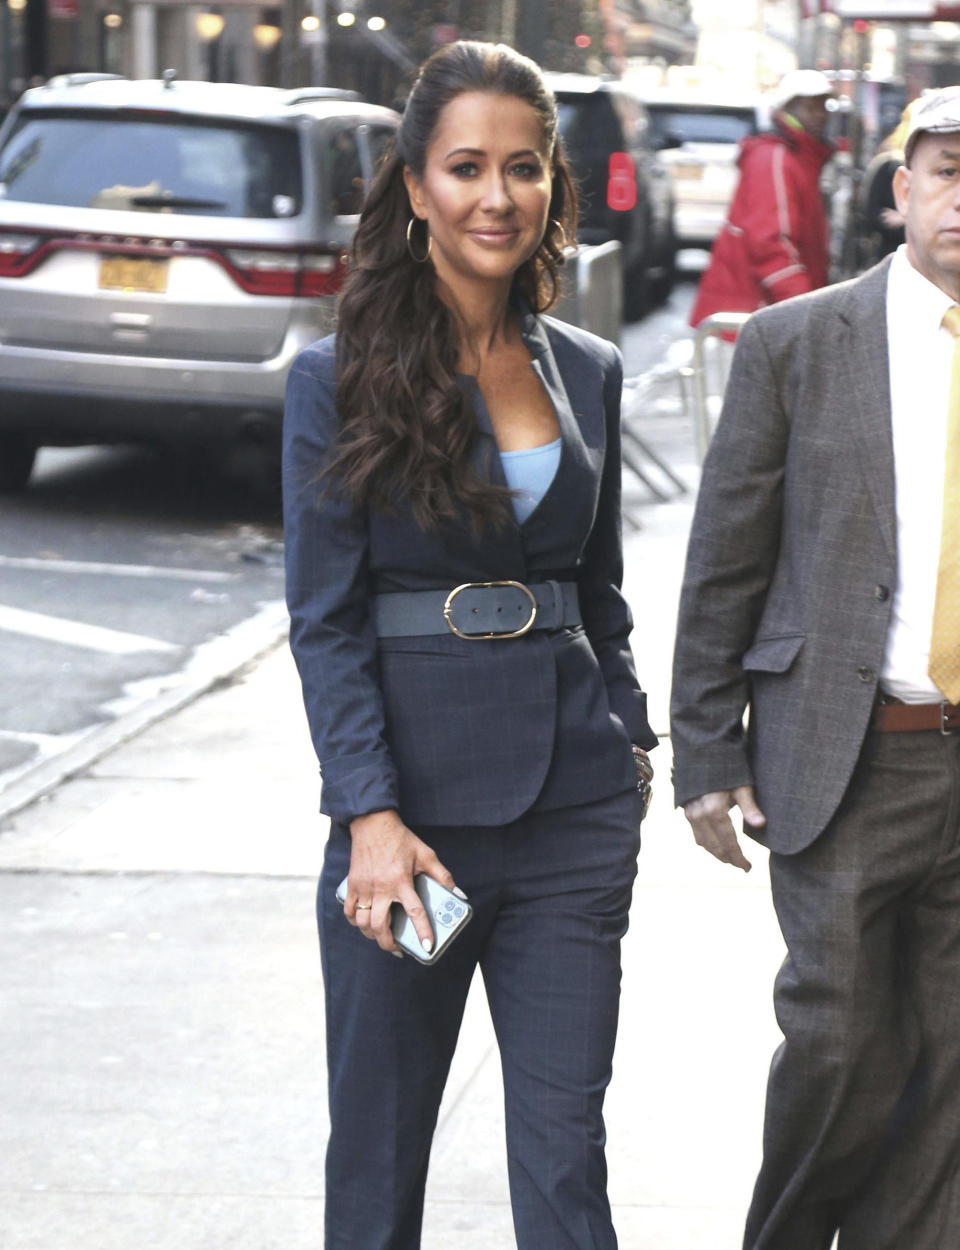 Jessica Mulroney is seen on February 24, 2020 at ABC Television Studios in New York City for an appearance on Good Morning America